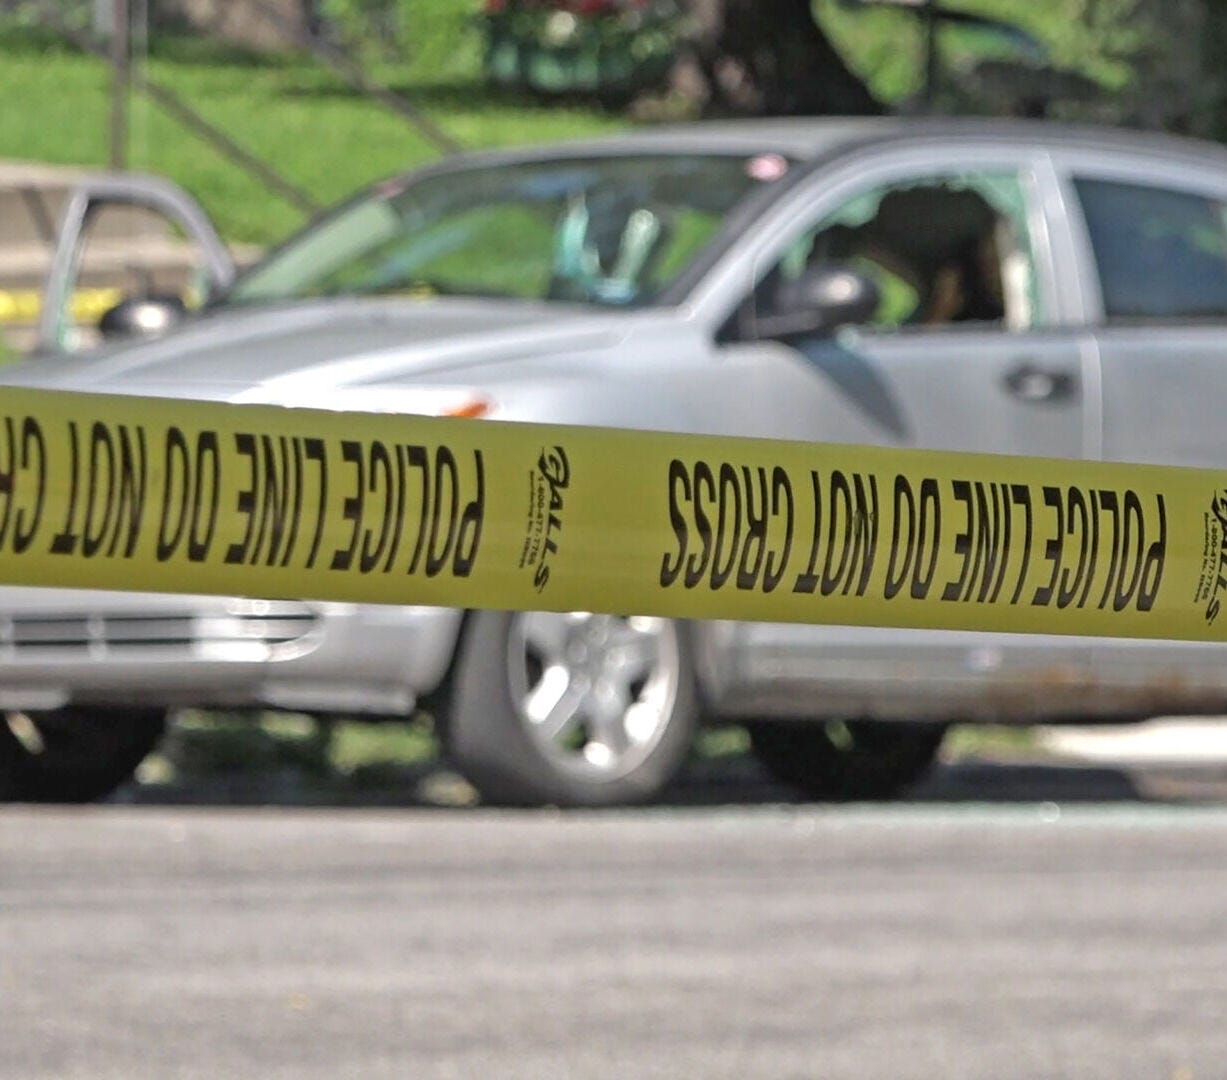 Could more be done to combat gun crime in St. Joseph?